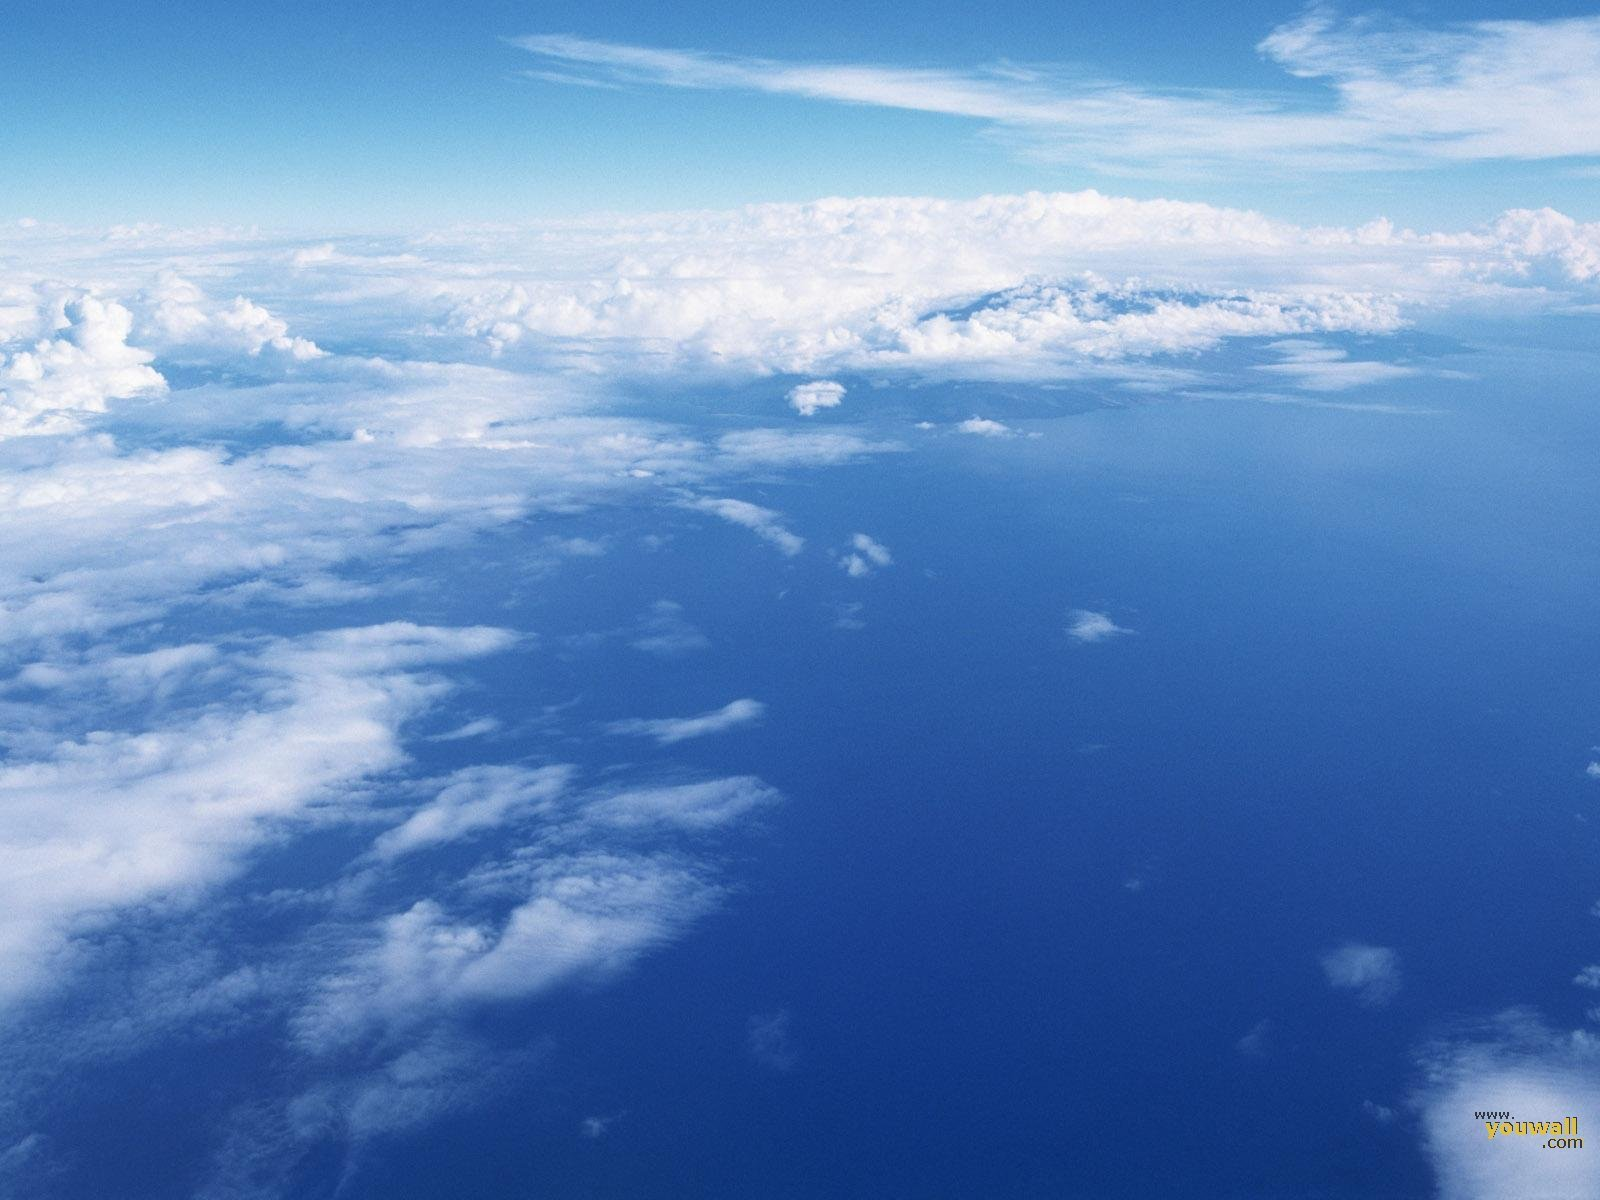 Labels Best Wallpapers Blue Sky Wallpaper cool picture at 0314 1600x1200